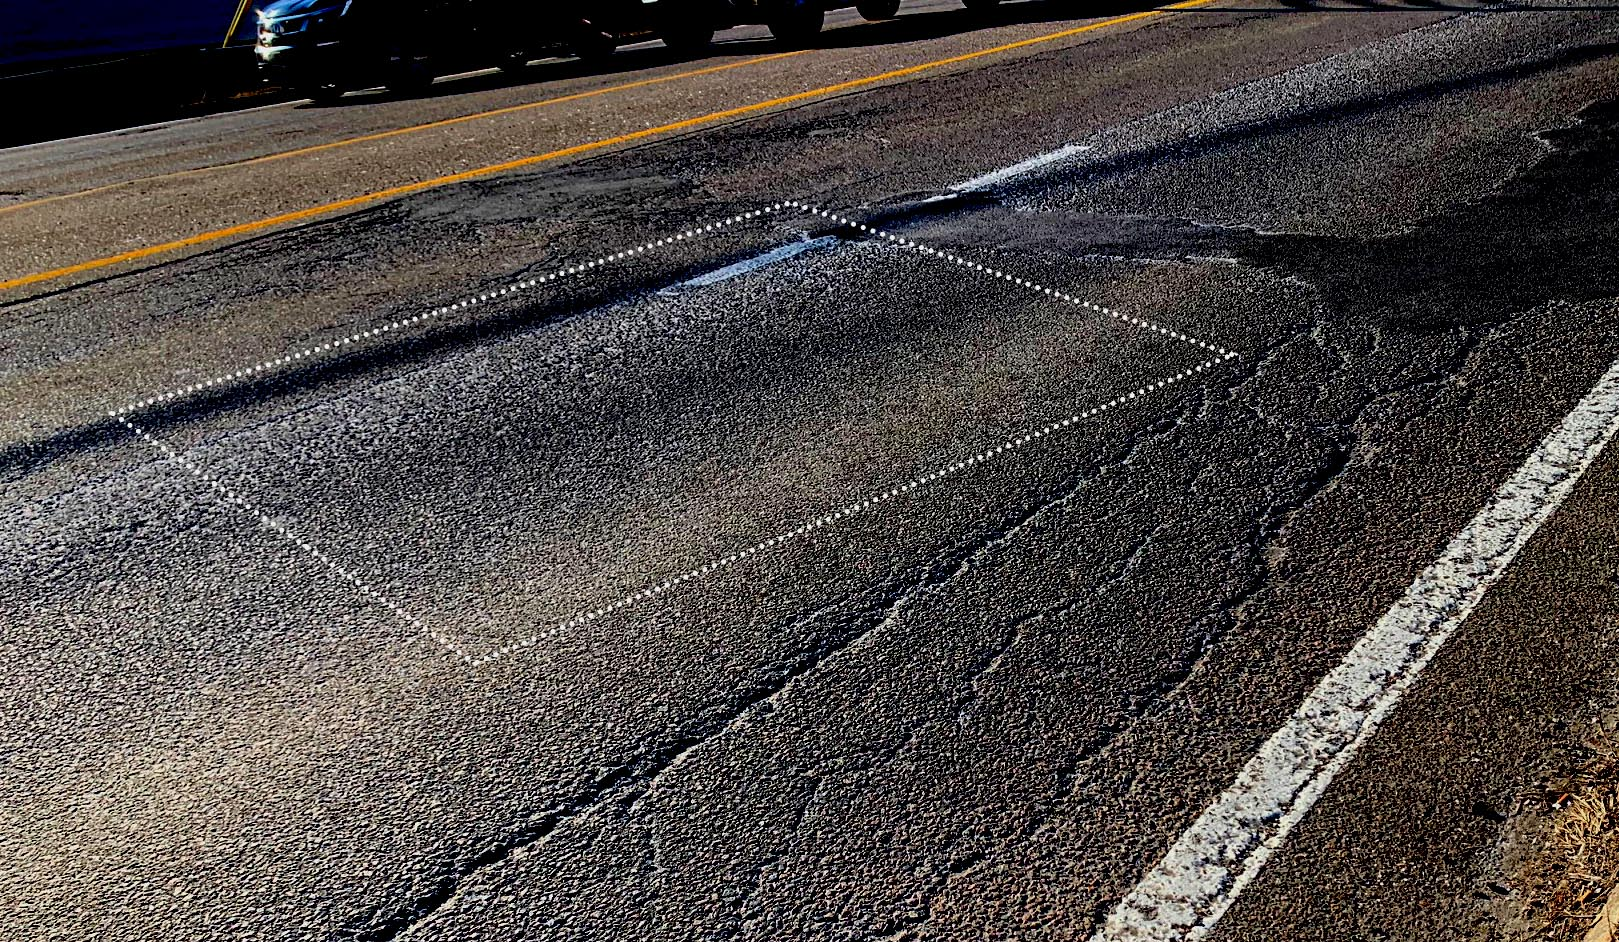 asphalt imperfection in a form of a rutting and shoving